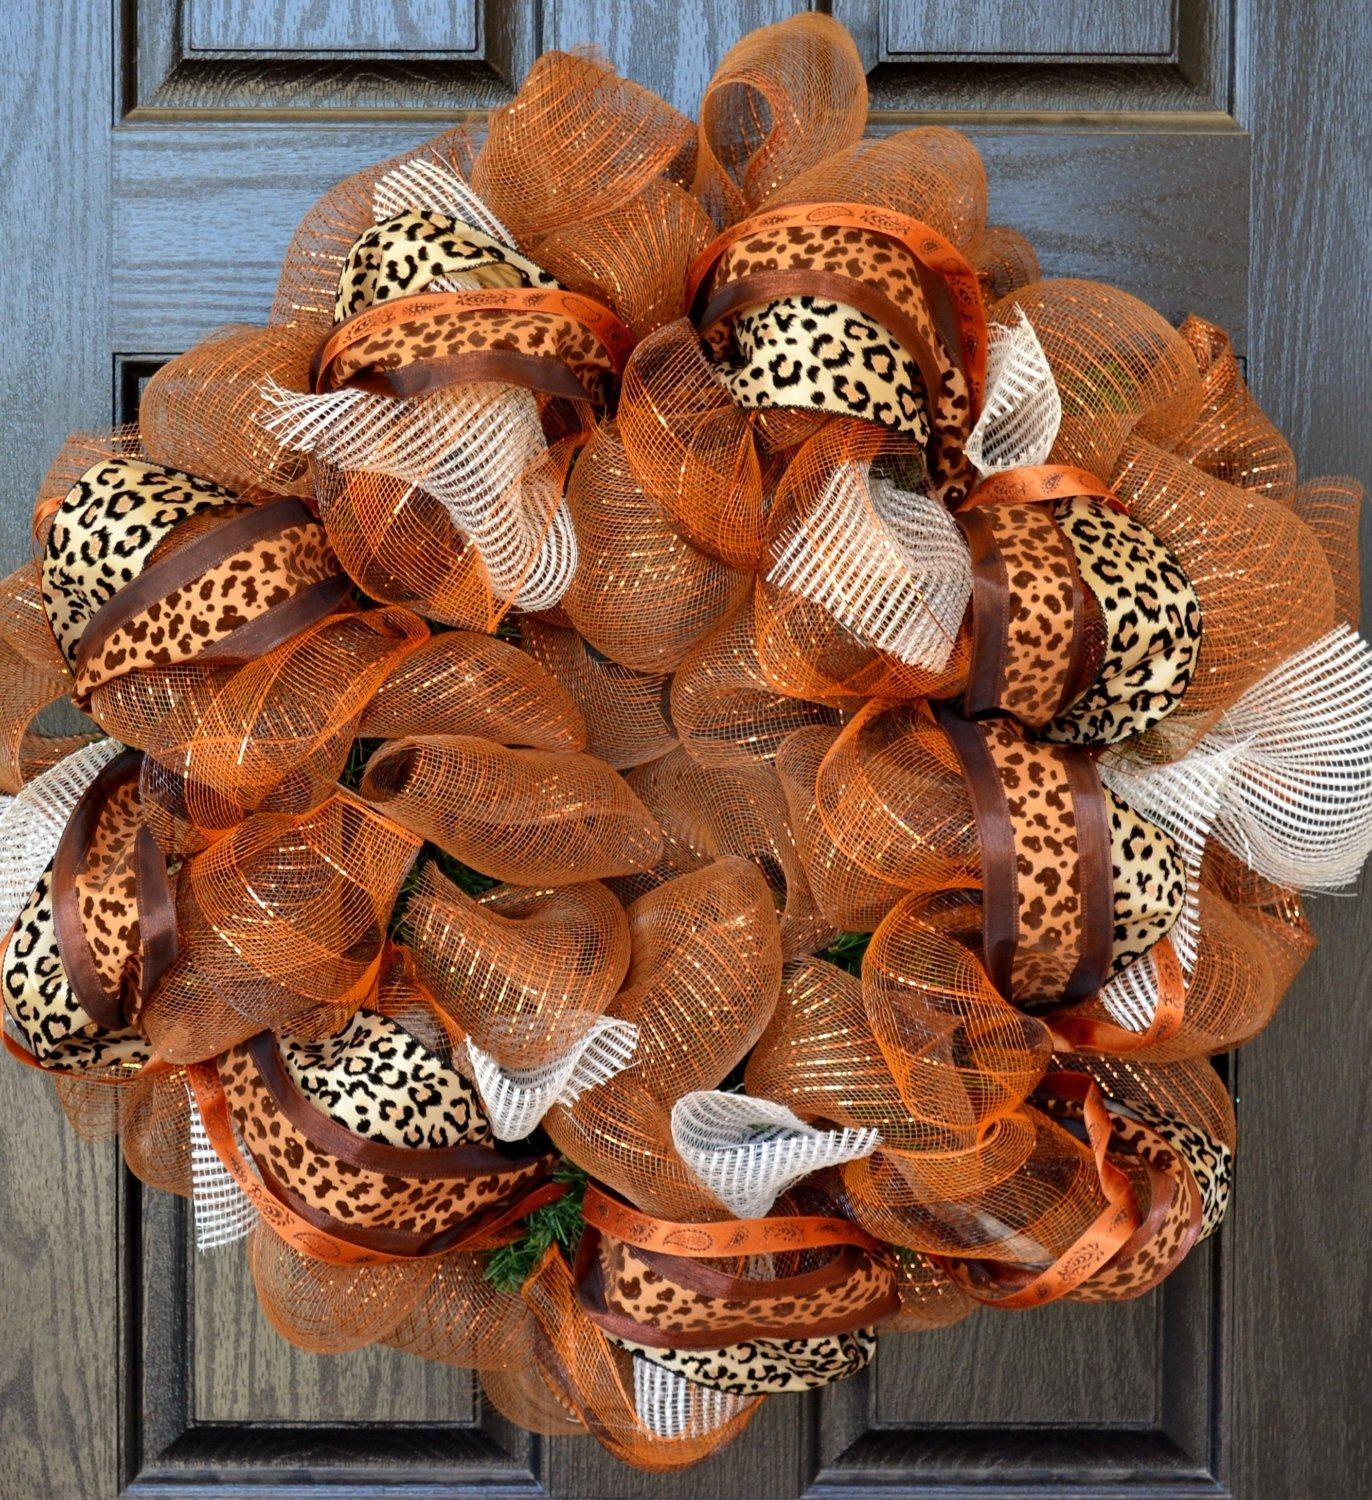 10 Attractive Deco Mesh Fall Wreath Ideas diy fall wreaths design ideas 17805